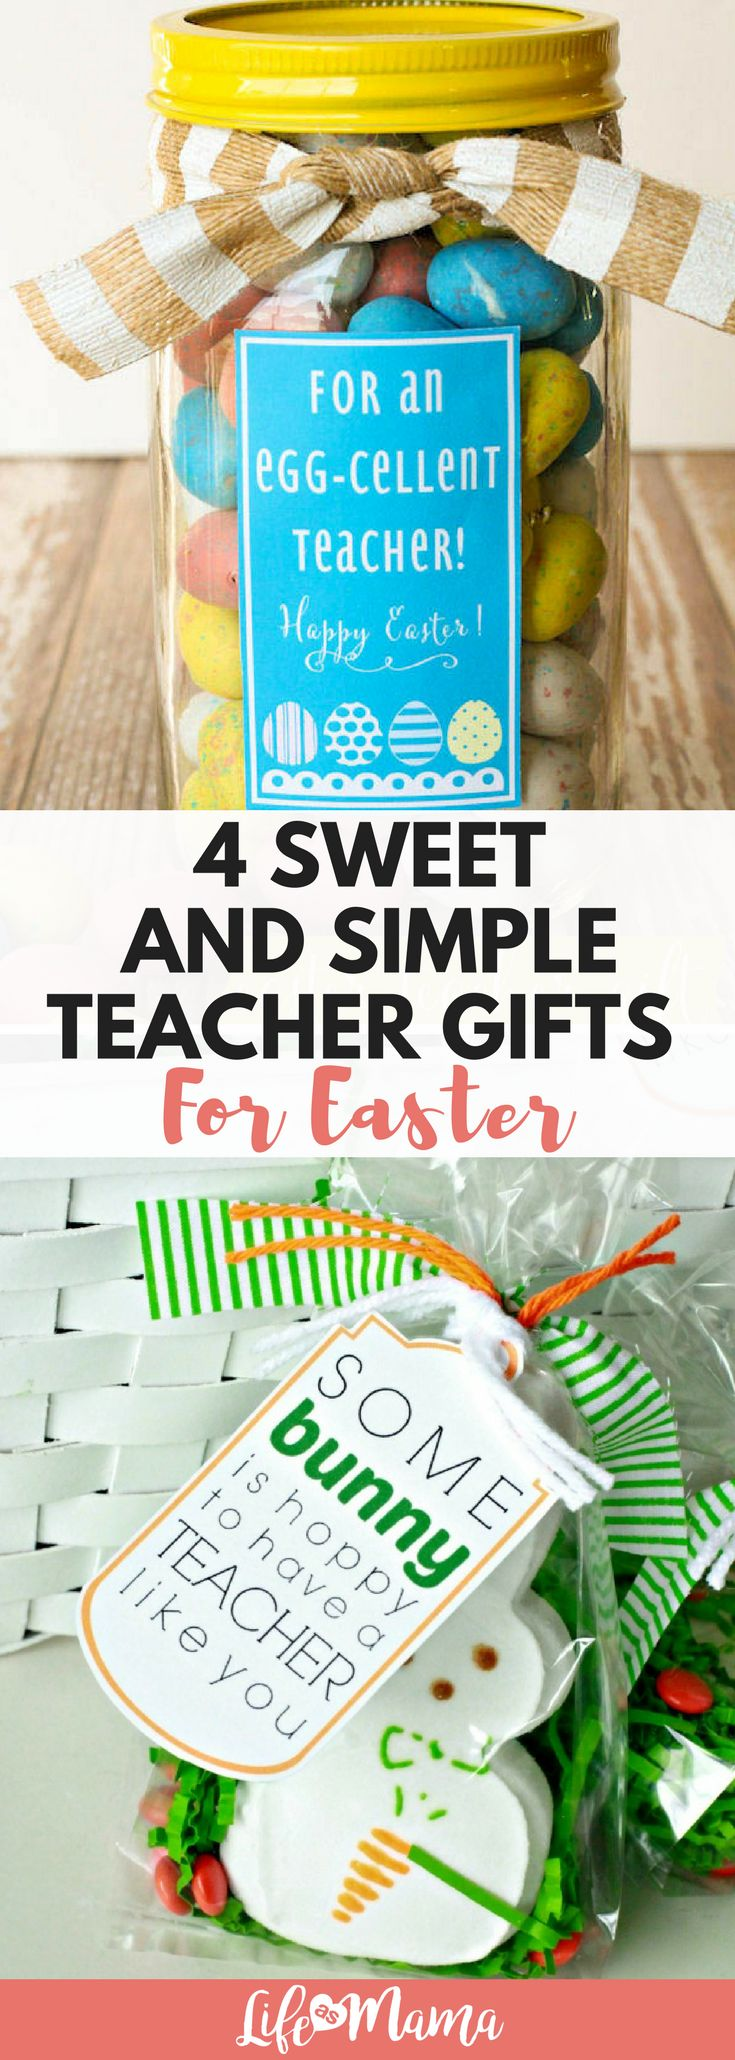 Great teacher gifts for Easter! Simple candy treats to show your appreciation. #teachergifts #teacherappreciation #easter #eastergifts #DIY #crafts #teachercrafts #giftsforeaster